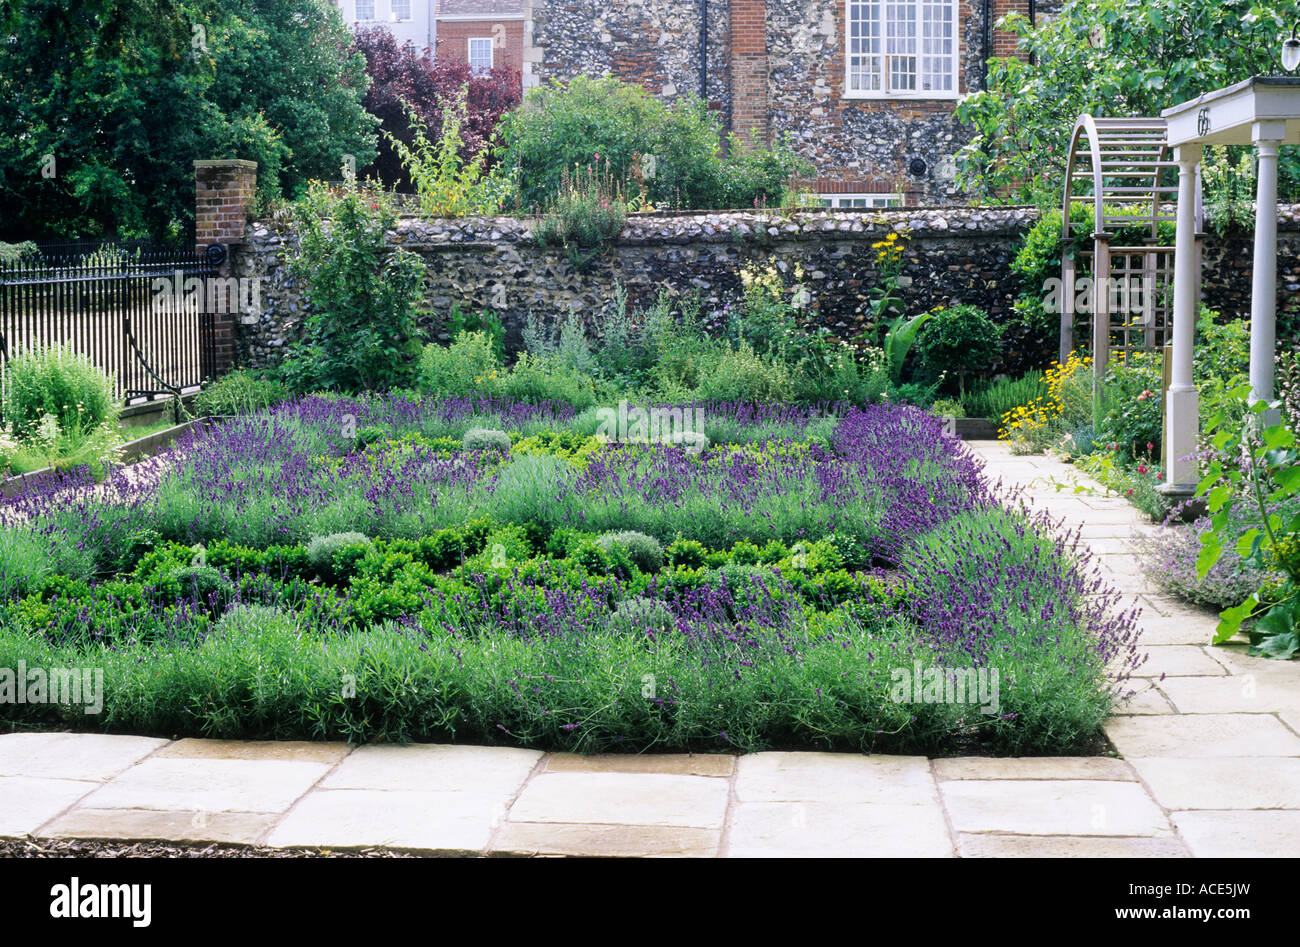 Herb knot front garden lavender box hedges stock photo for Herb knot garden designs